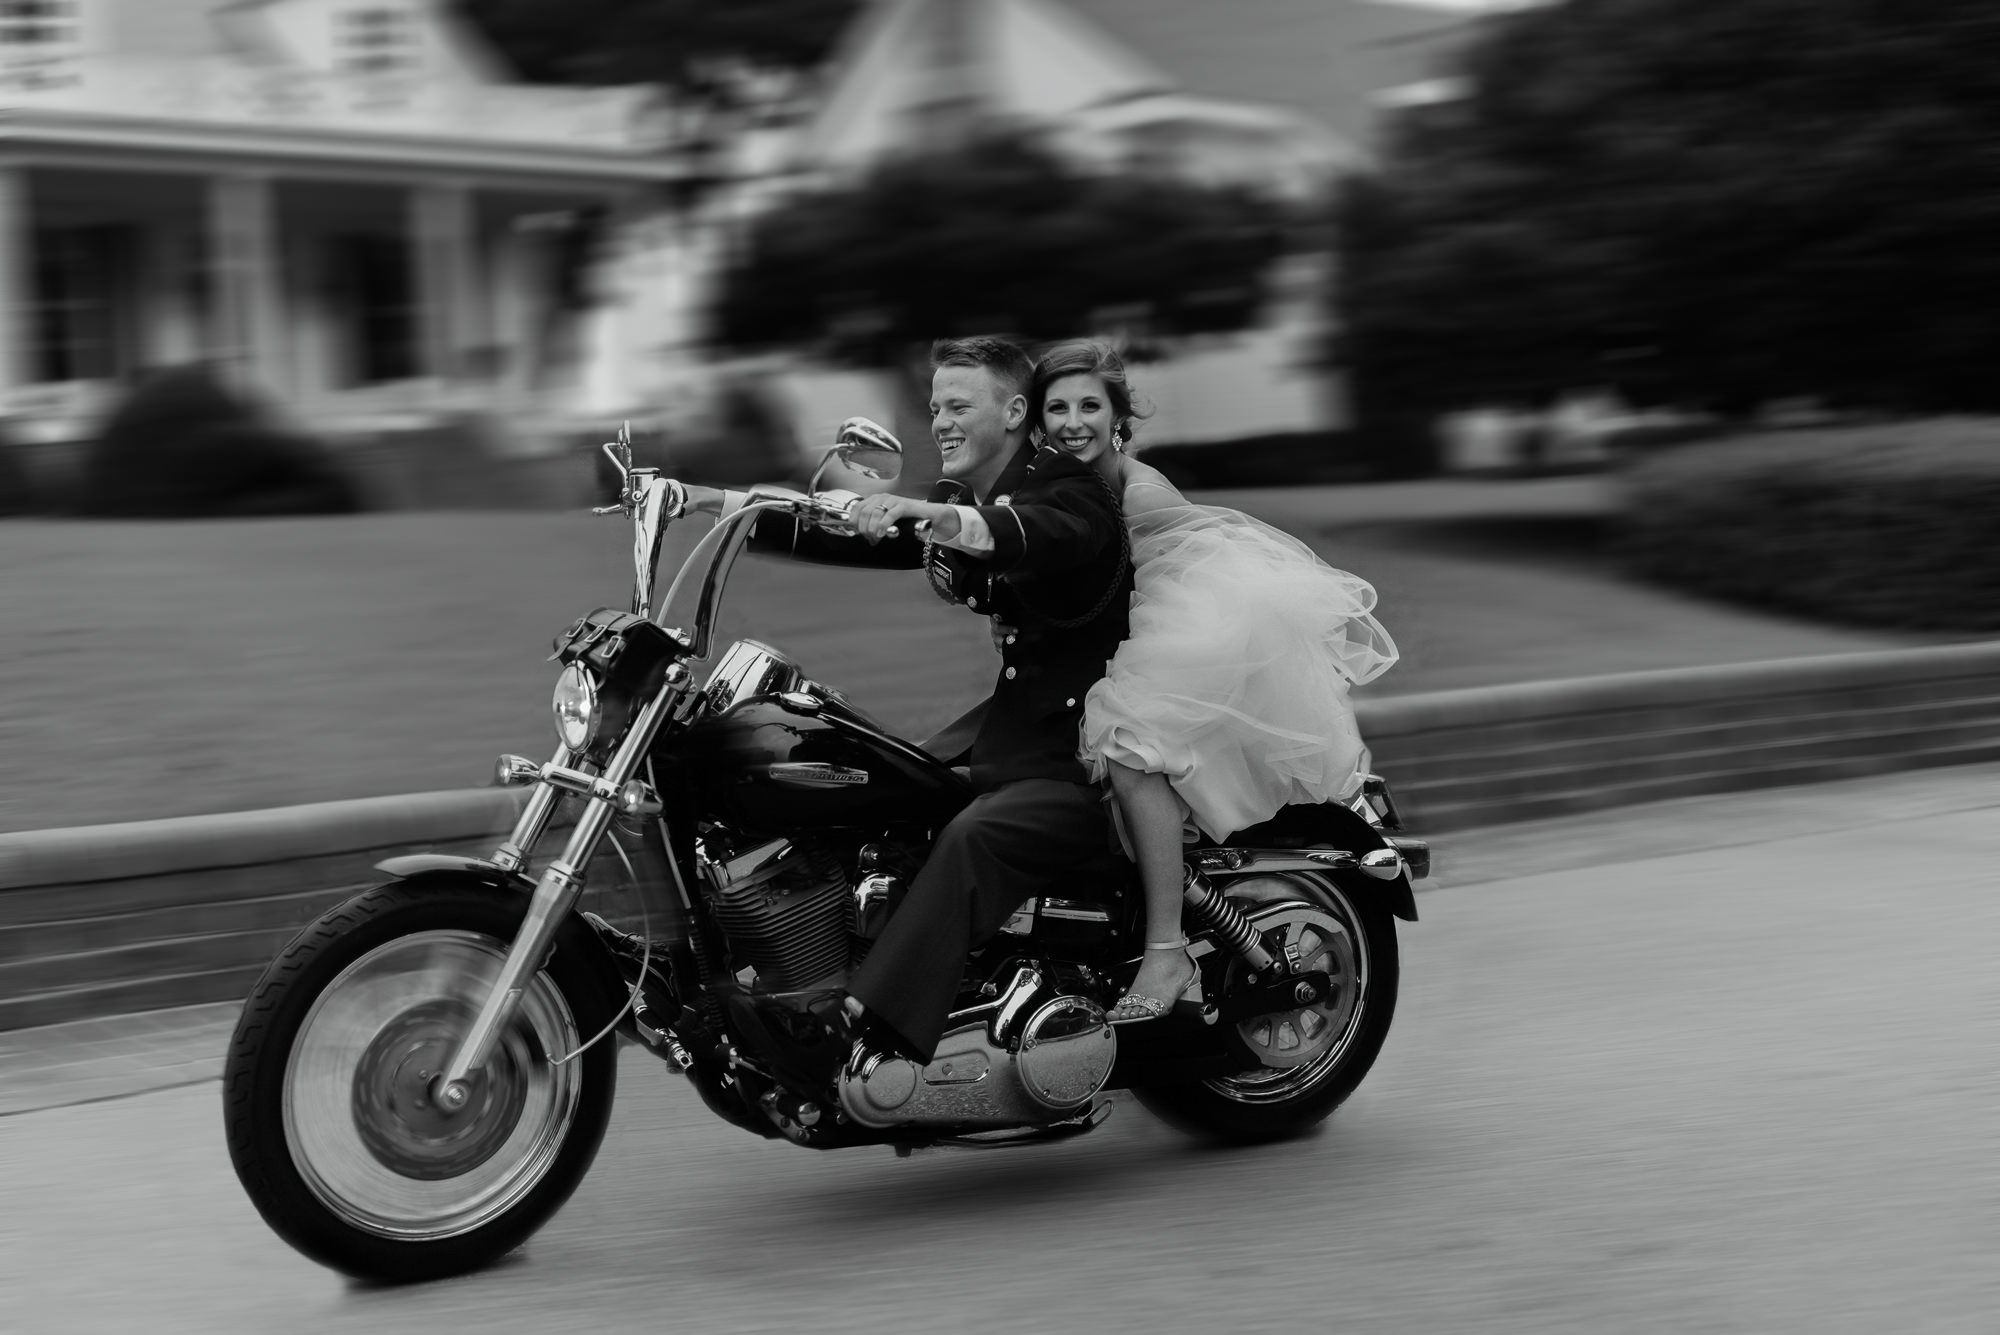 Bride and Groom riding off on motorcycle